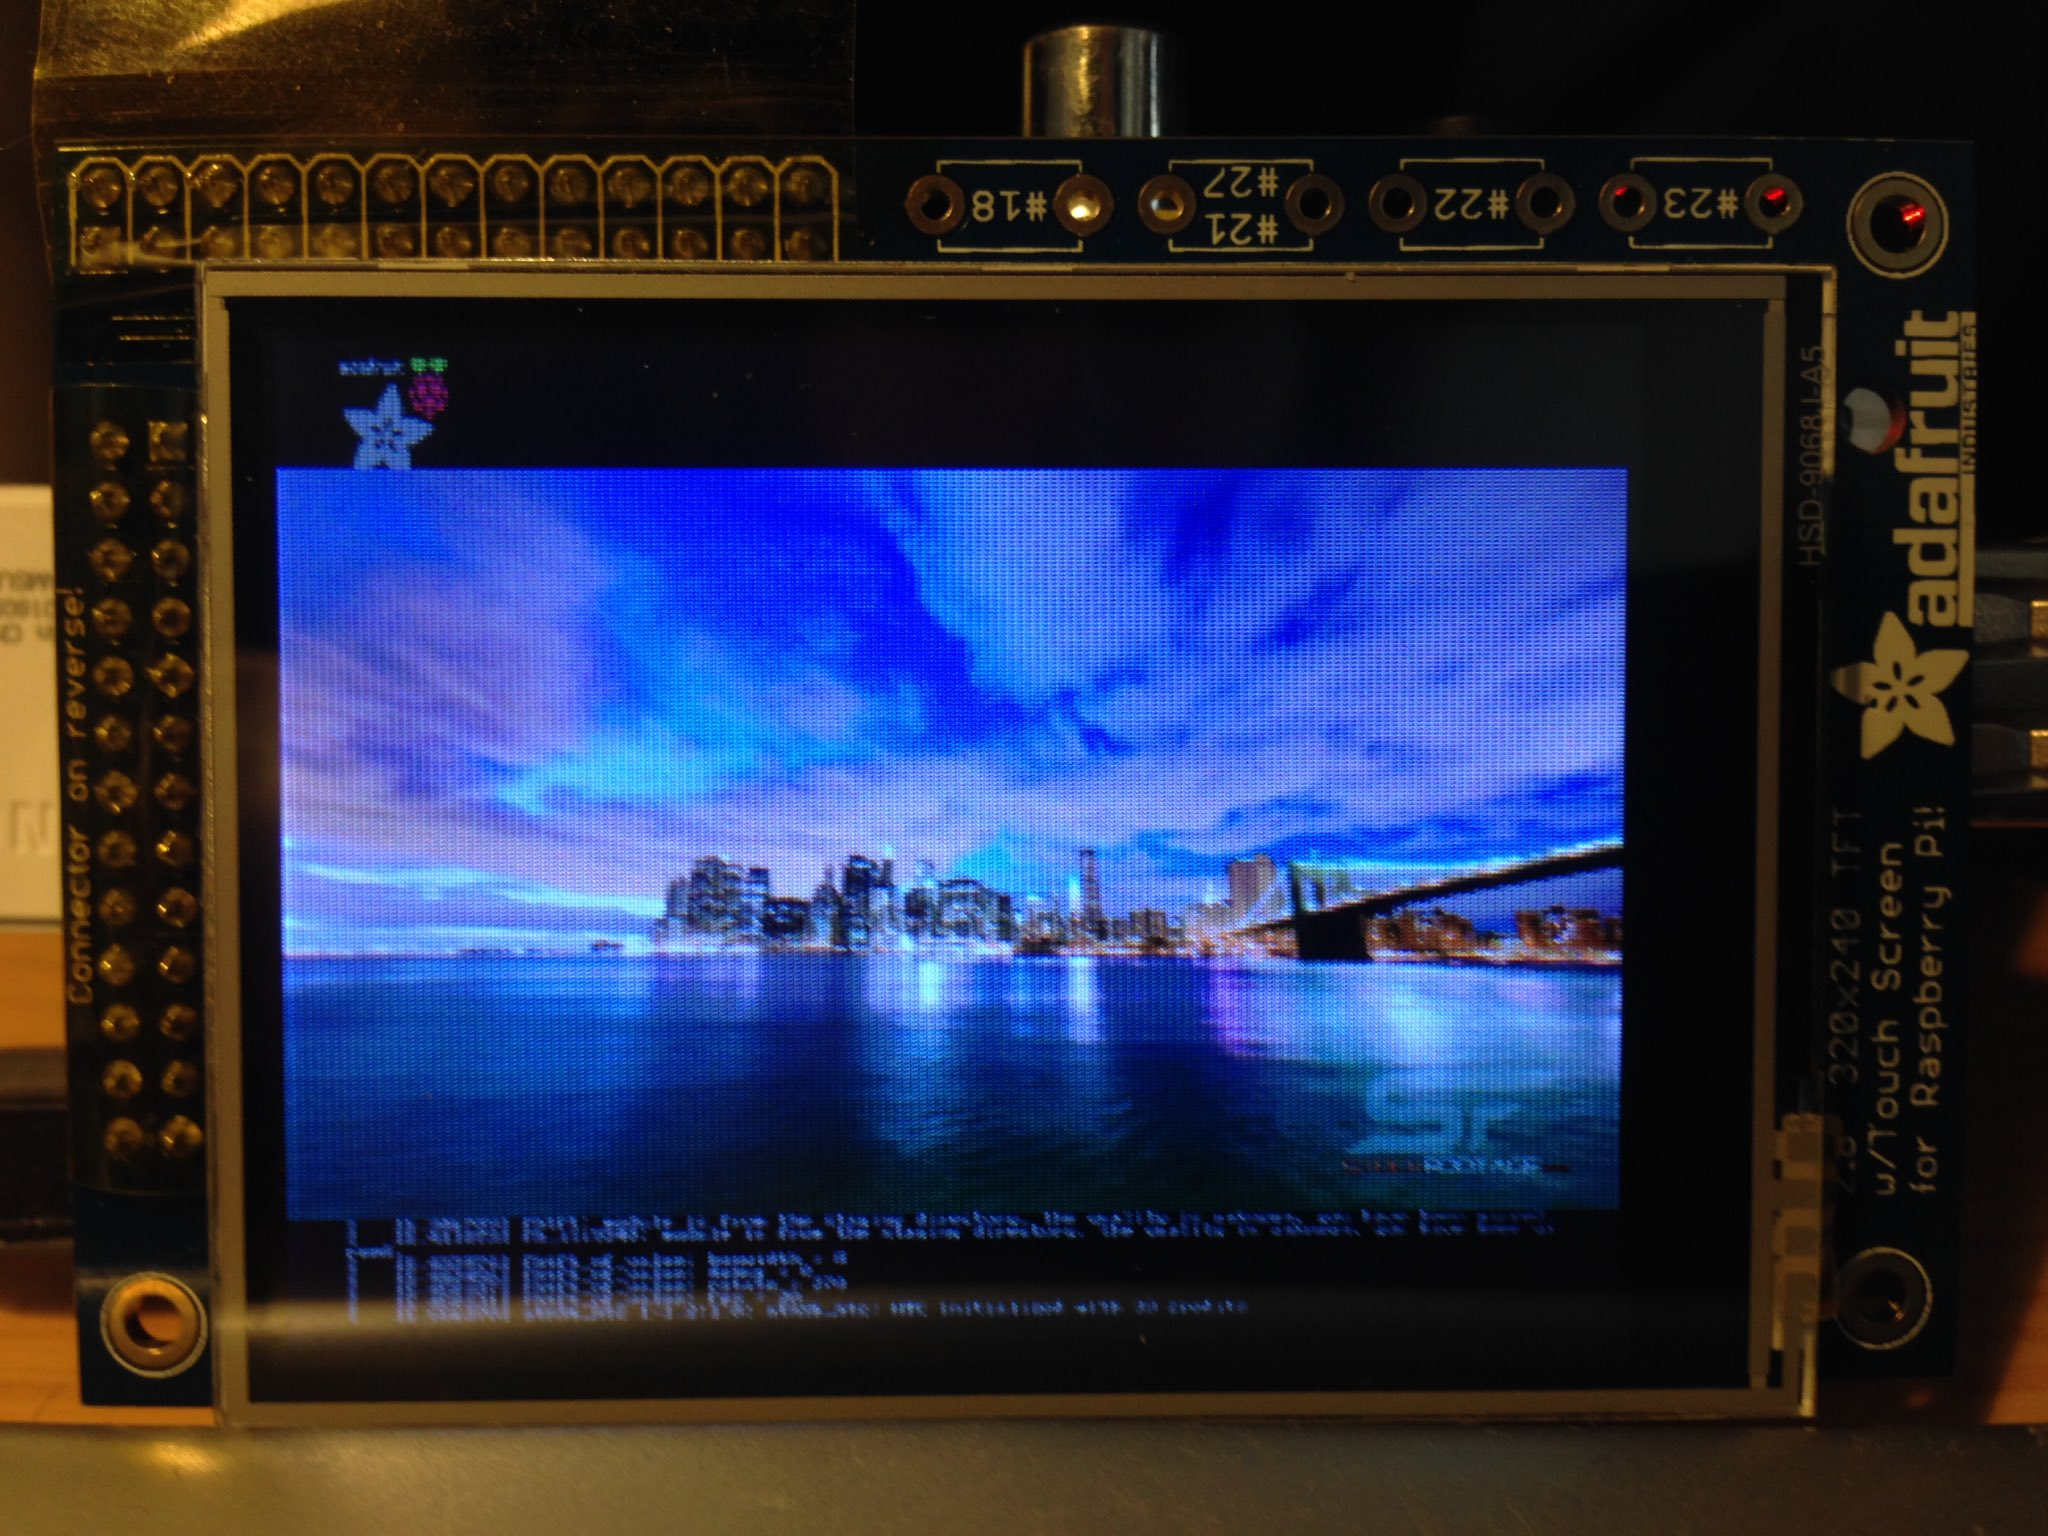 Installing the Adafruit 2 8″ TFT Display on the Raspberry Pi